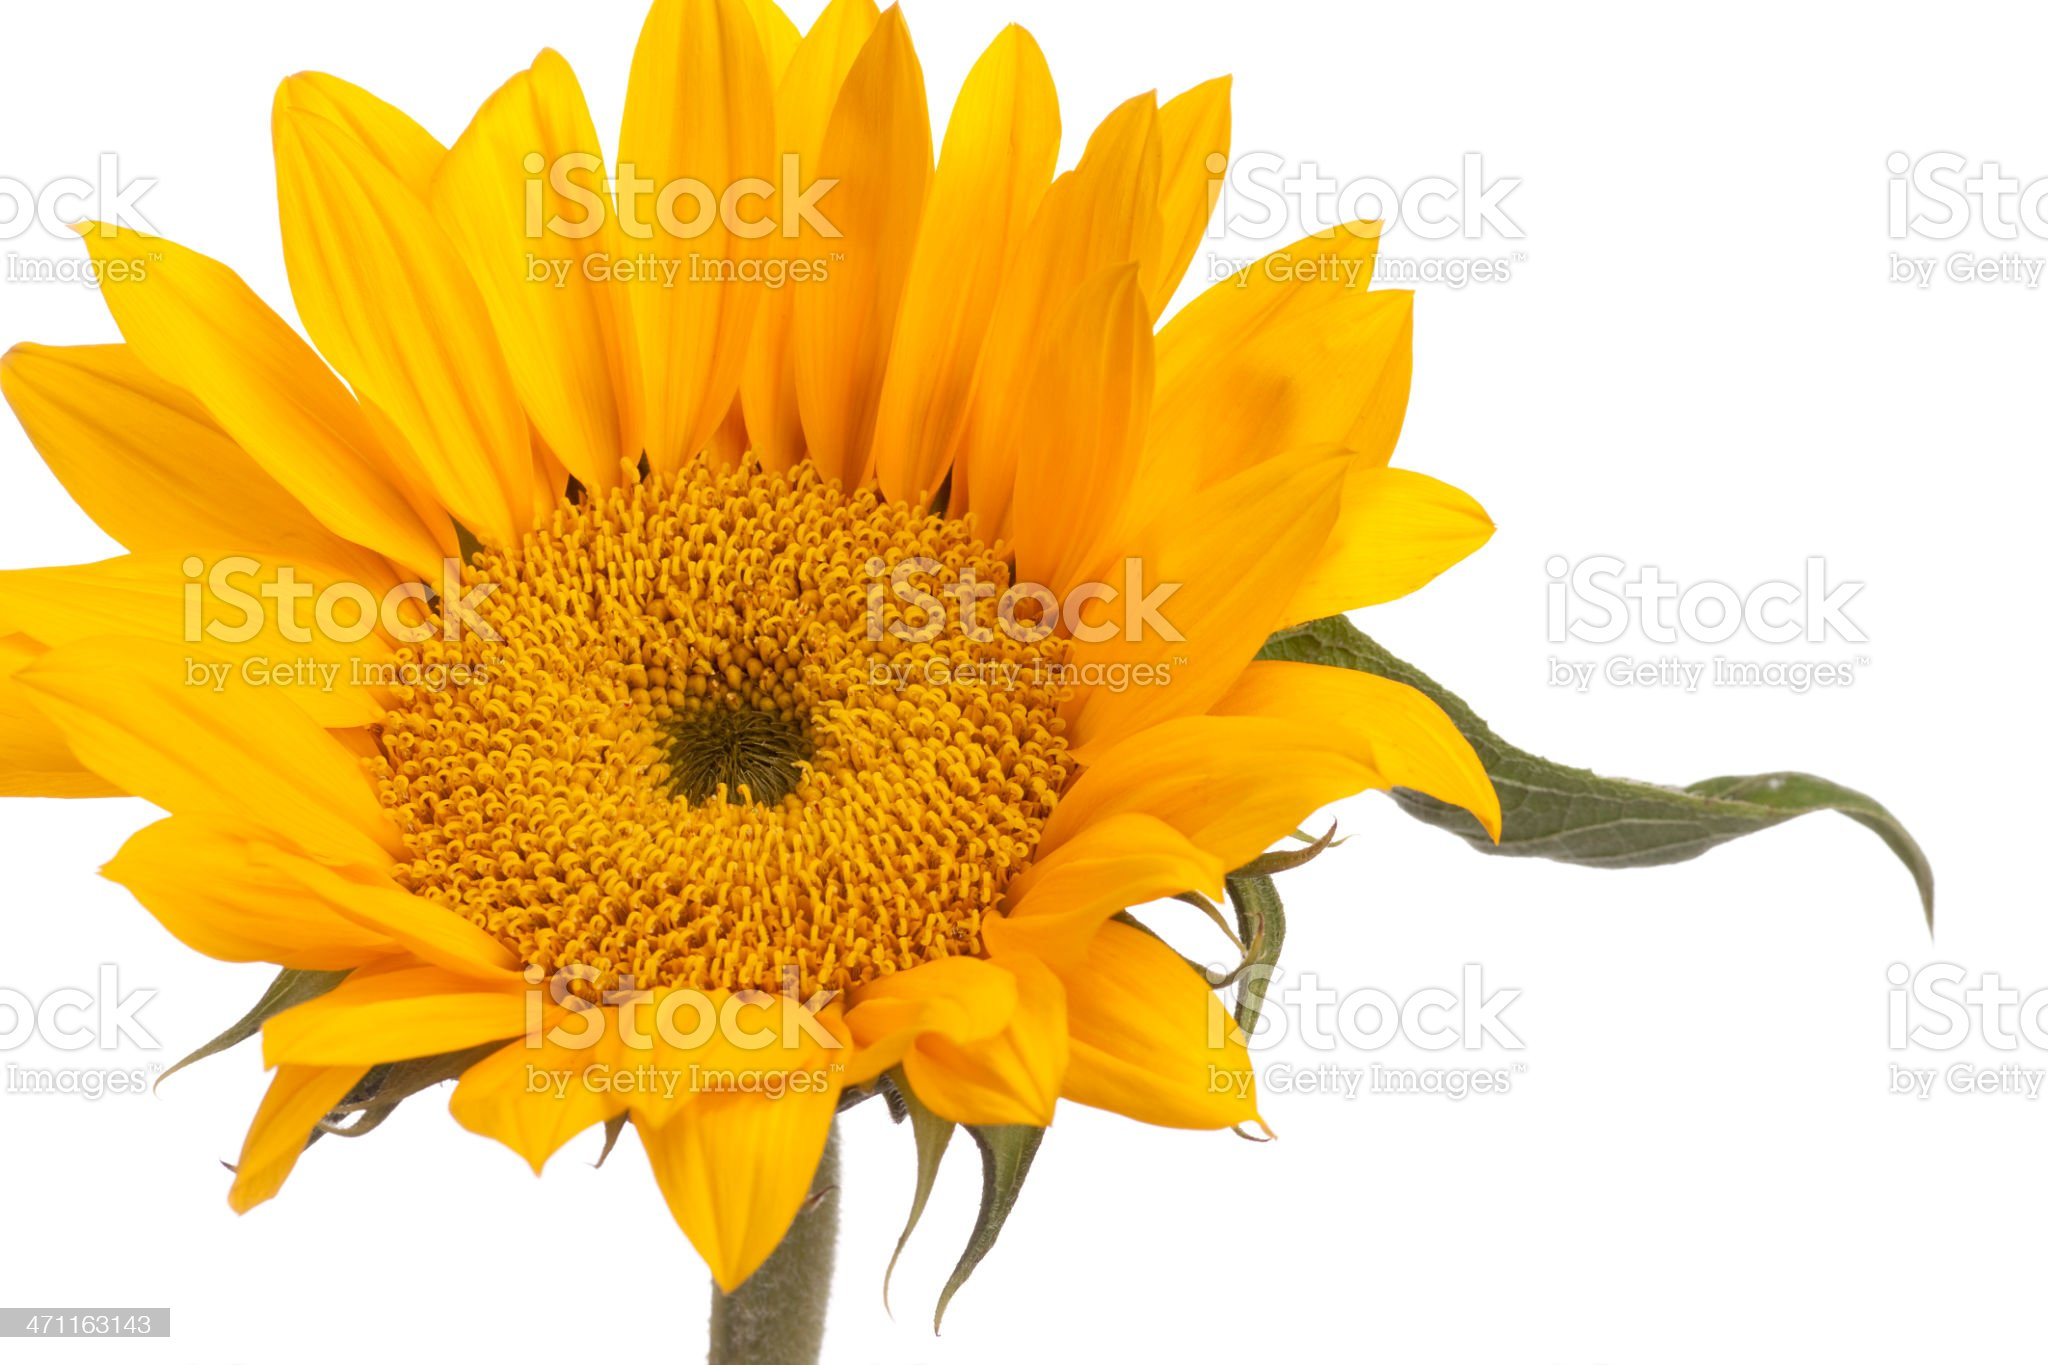 Sunflower, Flower, Isolated Object, Vivid Color, Spring, Close-Up royalty-free stock photo